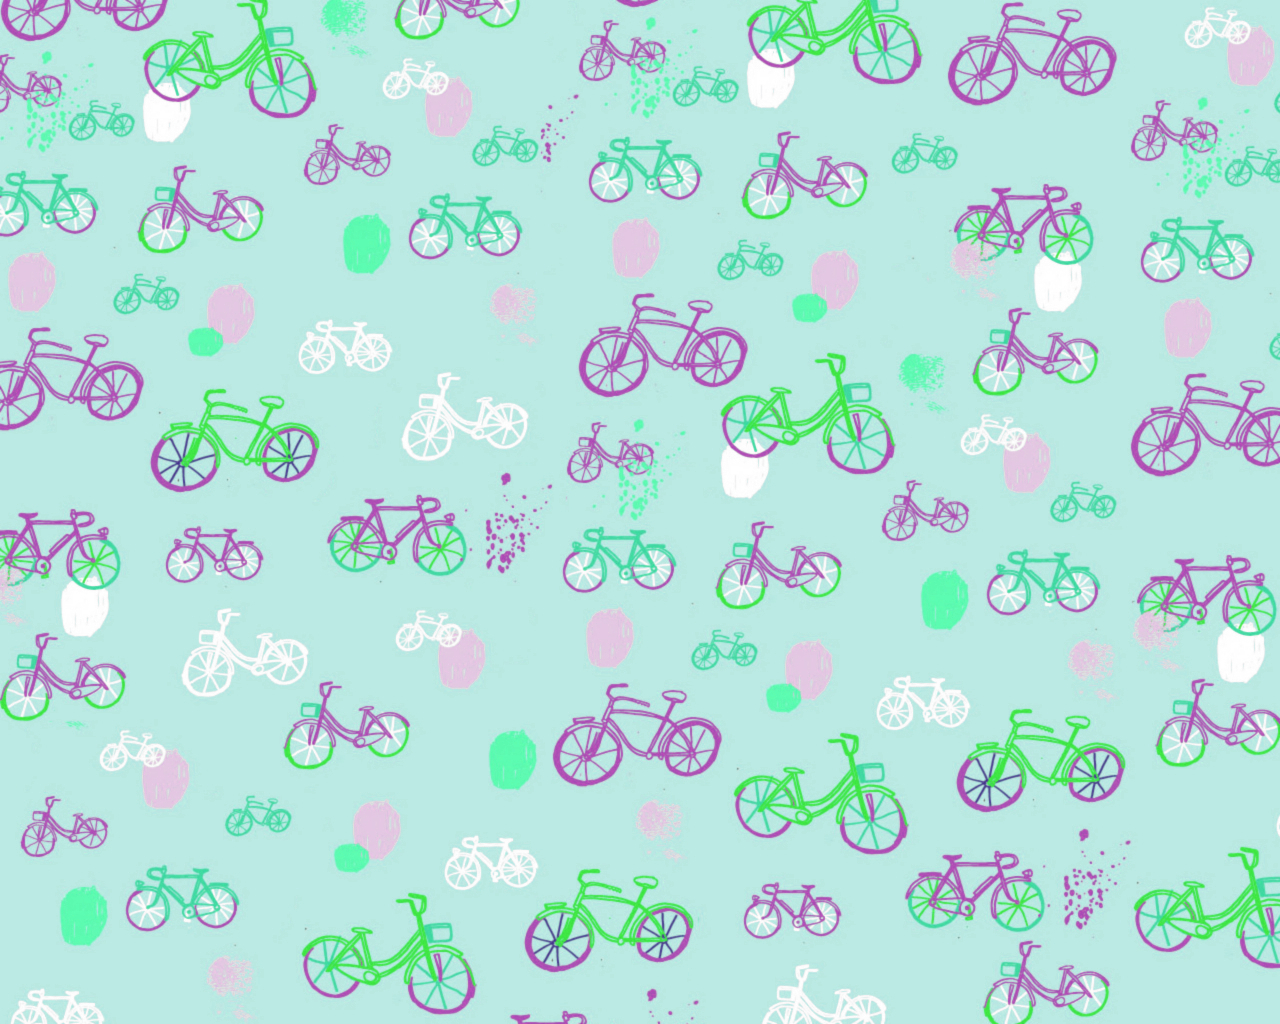 Bicycles shifted abstract HD Wallpaper